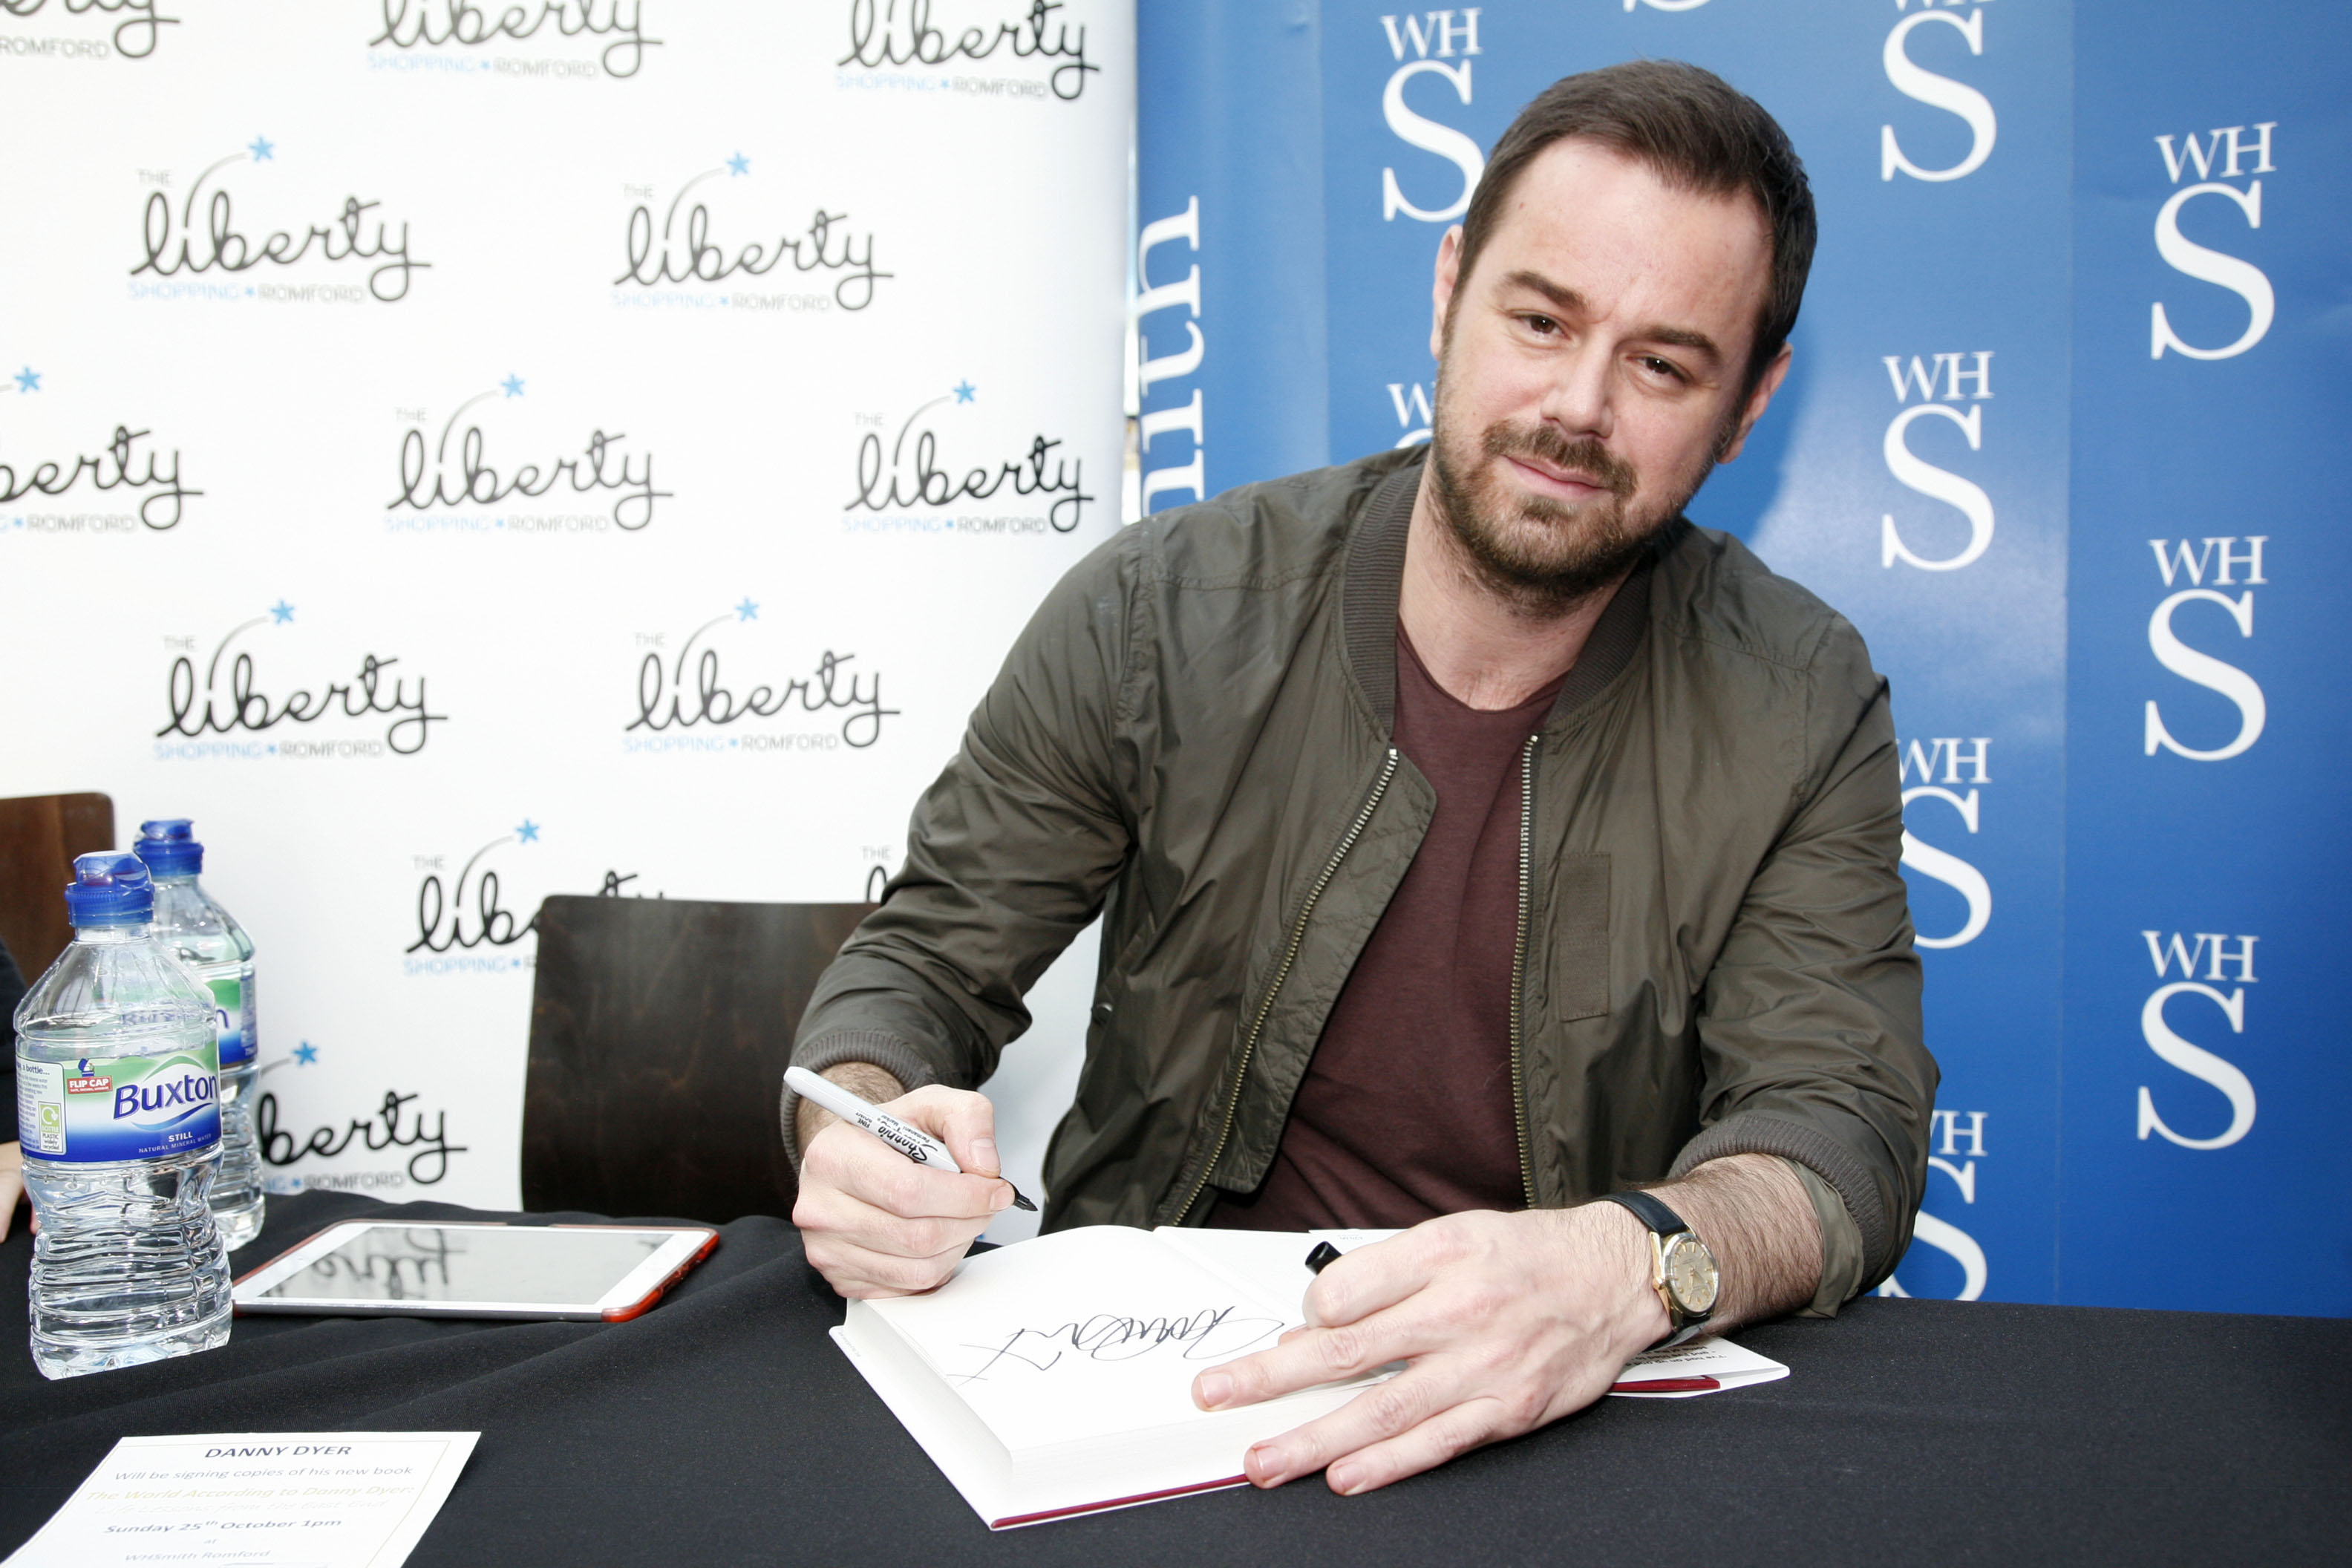 danny dyer talkingdanny dyer kinopoisk, danny dyer quotes, danny dyer oasis, danny dyer football, danny dyer 2016, danny dyer wife, danny dyer net worth, danny dyer harold pinter, danny dyer richard, danny dyer talking, danny dyer aliens, danny dyer dundee, danny dyer films, danny dyer 007, danny dyer king, danny dyer amy winehouse, danny dyer instagram, danny dyer football factory, danny dyer twitter, danny dyer facebook